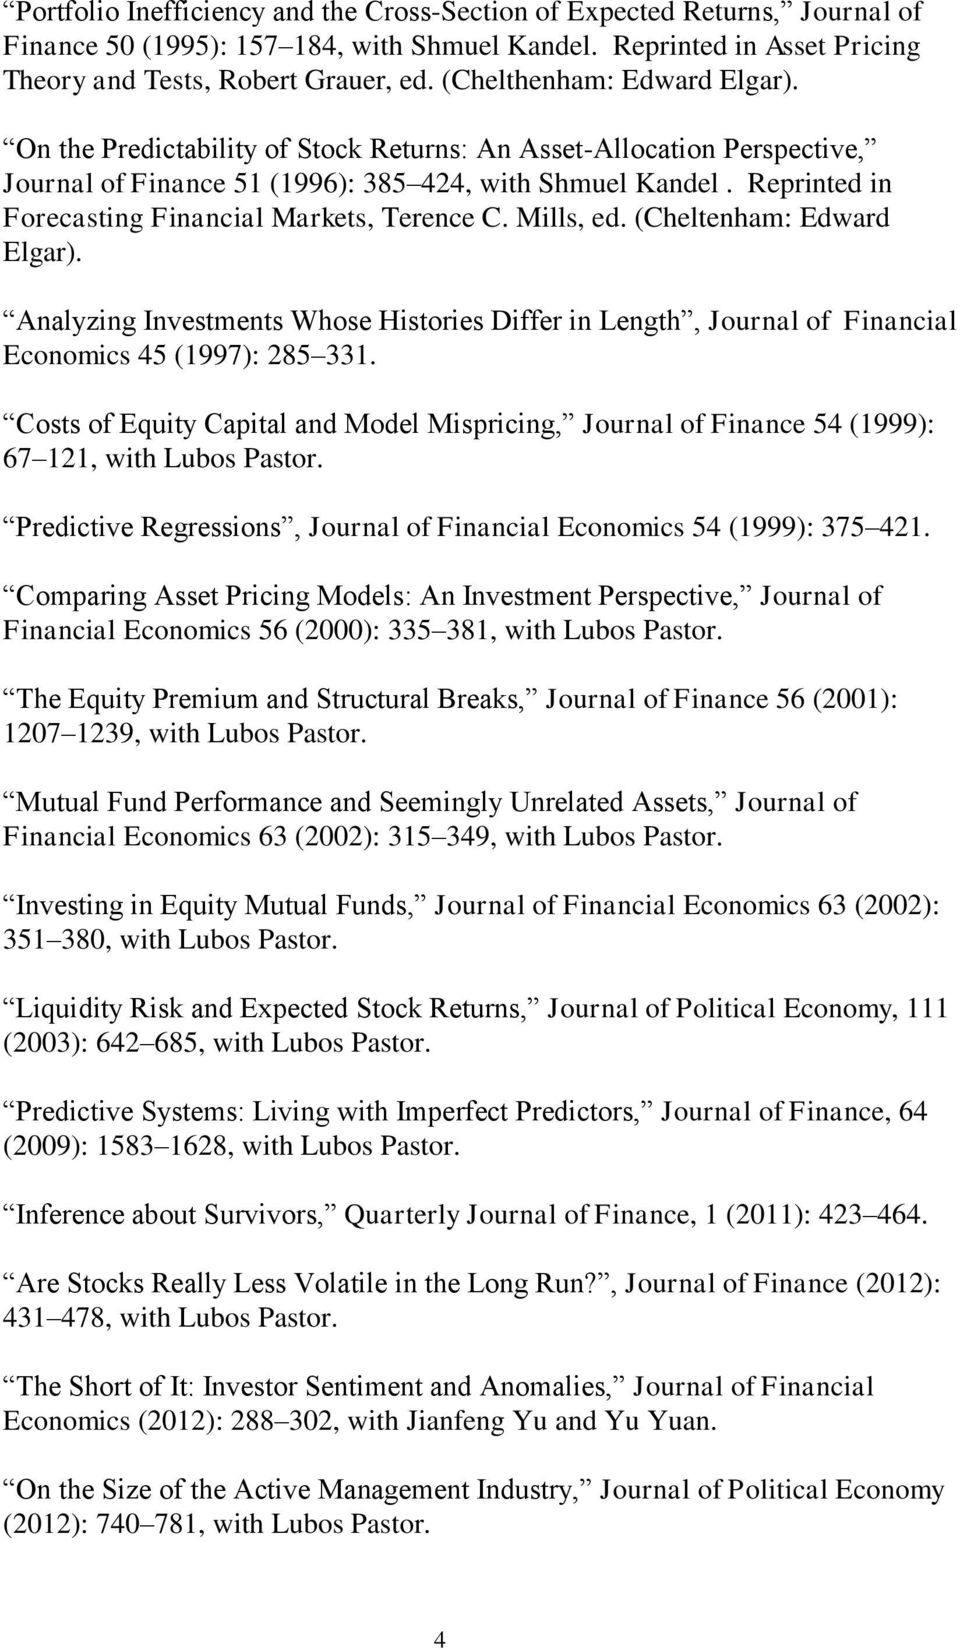 Reprinted in Forecasting Financial Markets, Terence C. Mills, ed. (Cheltenham: Edward Elgar). Analyzing Investments Whose Histories Differ in Length, Journal of Financial Economics 45 (1997): 285 331.